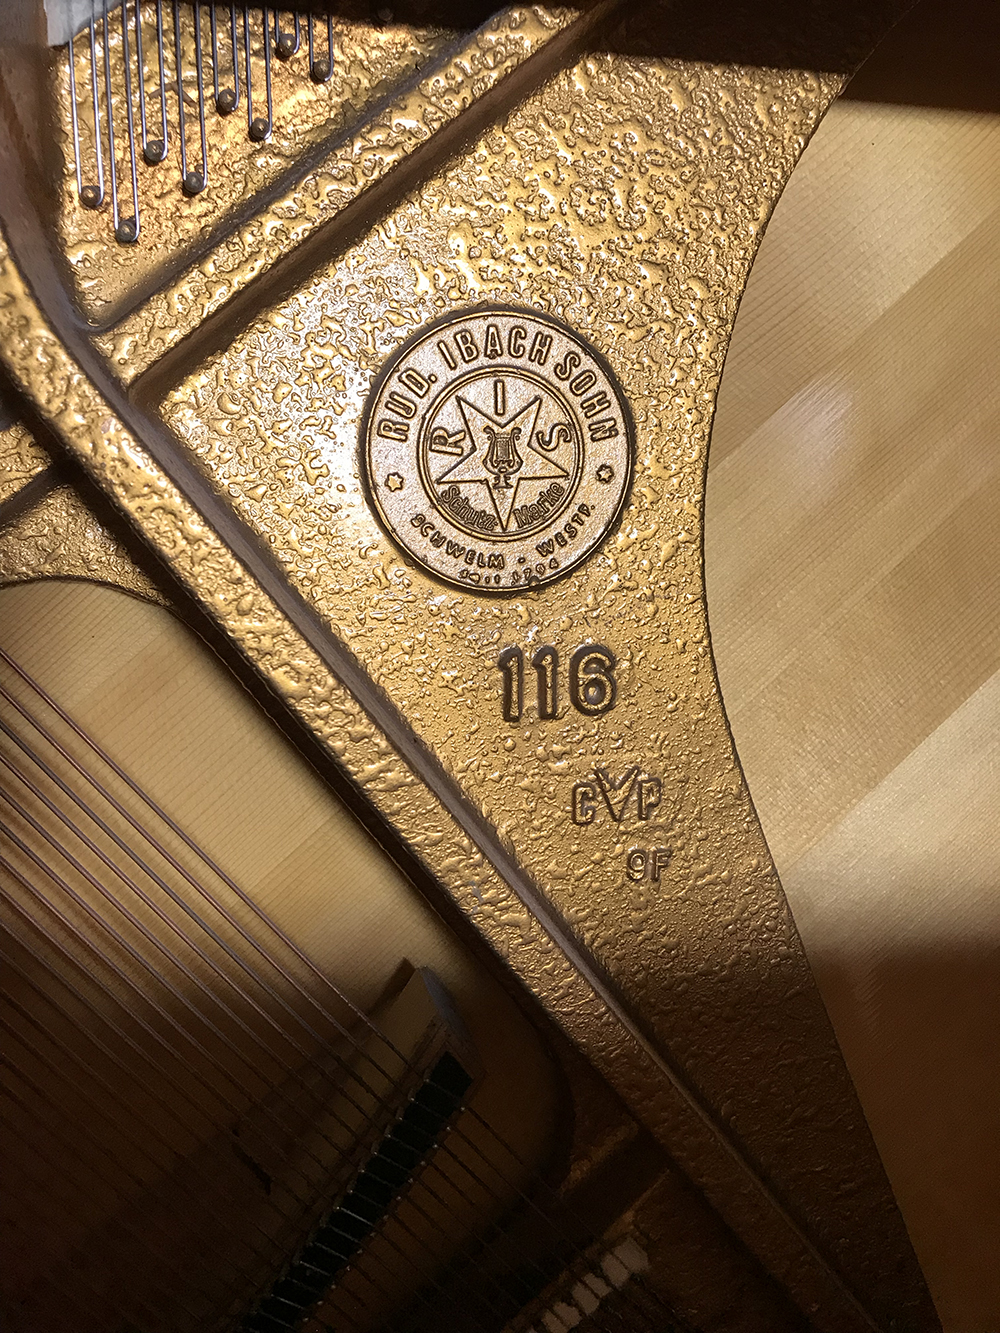 ibach-upright-quality-used-Piano-Dorset-5.jpg